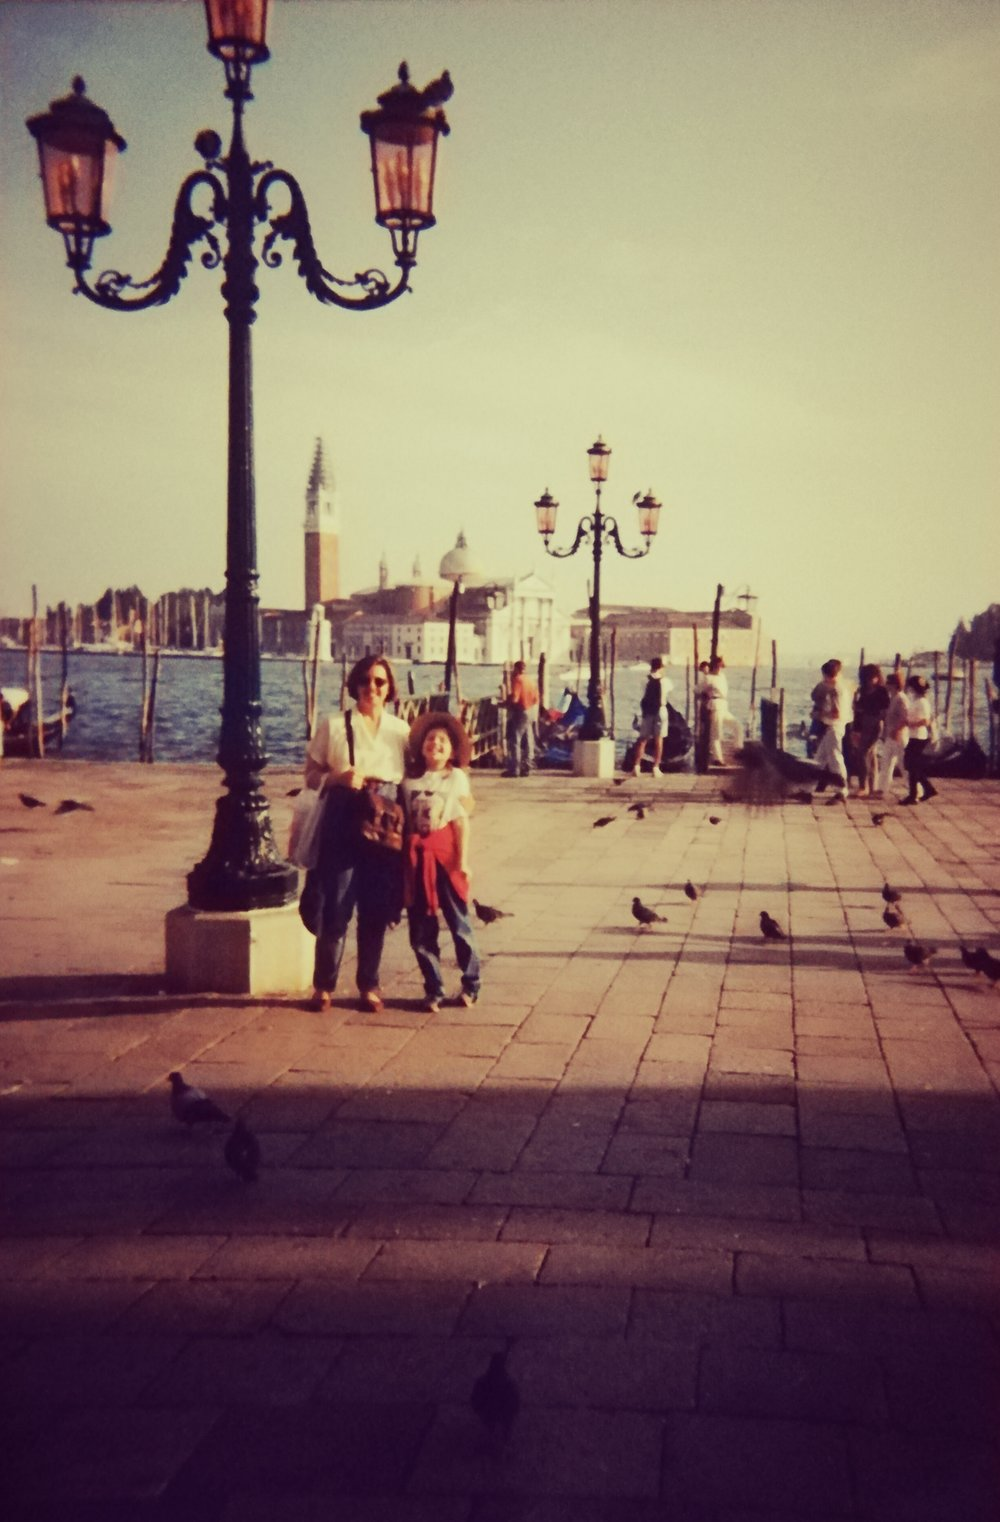 Me and my mum in Venice in 1994 (during the participation at 37º Zecchino D'Oro)